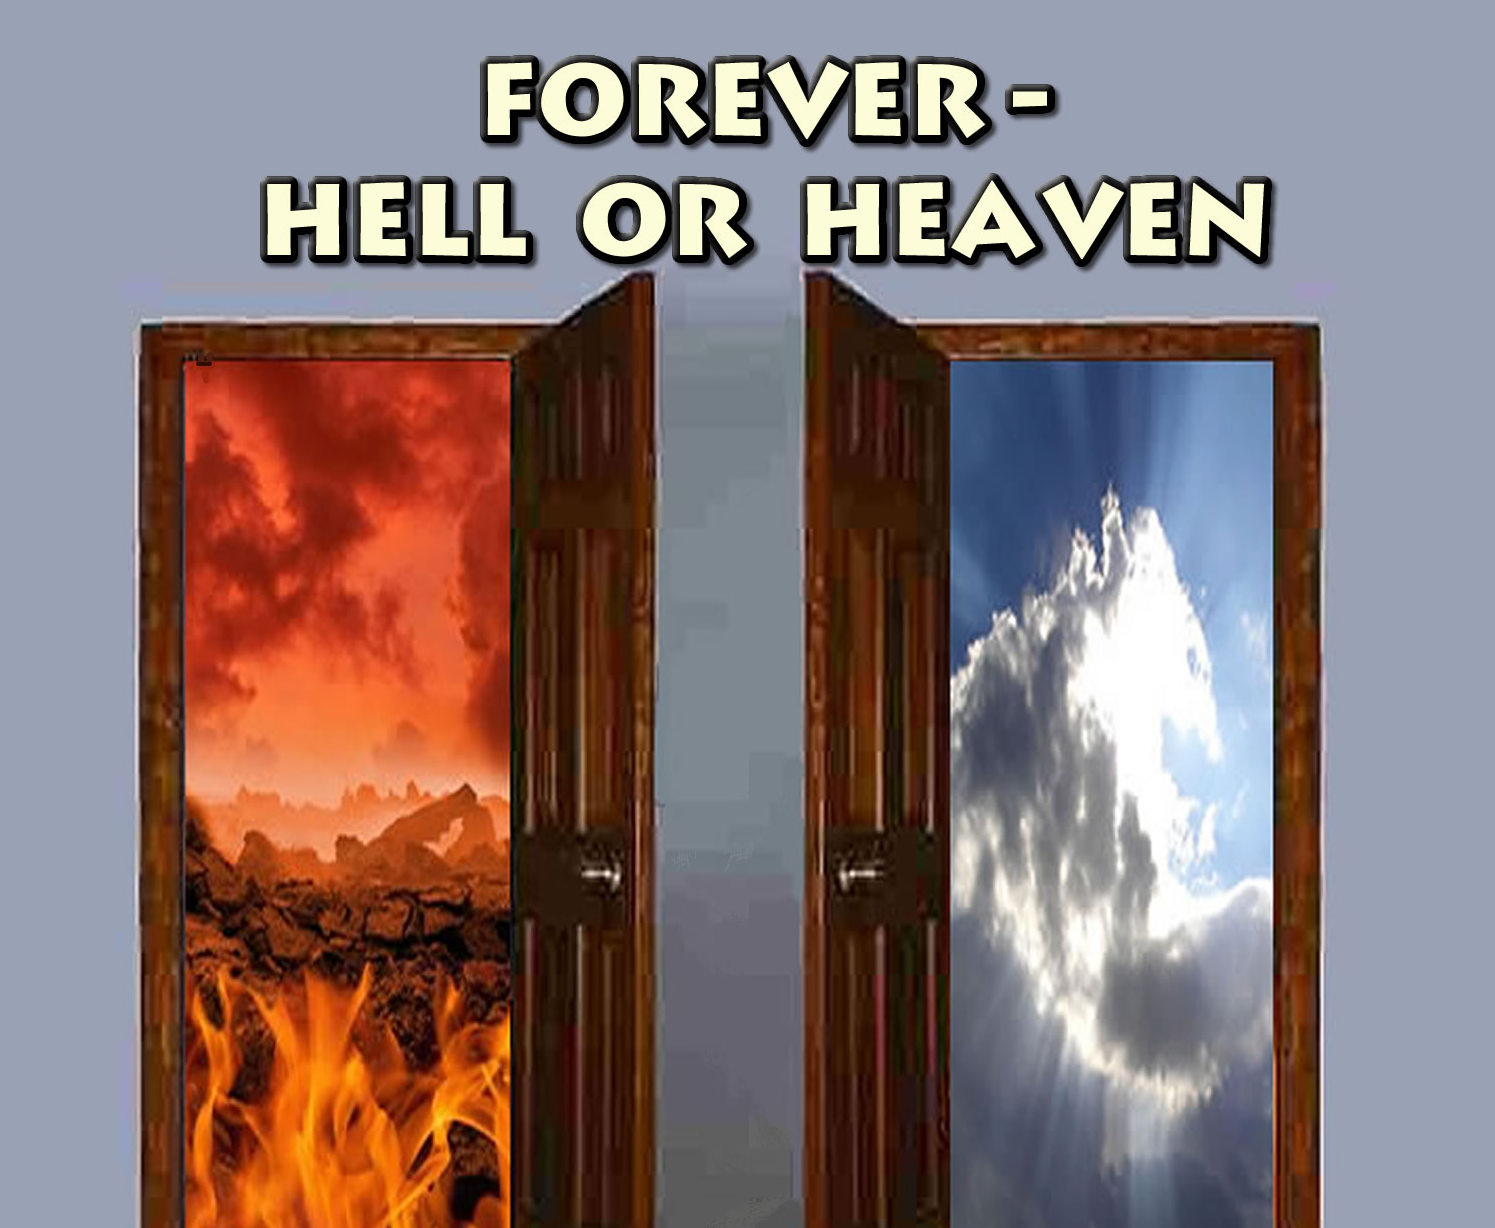 Heaven or Hell Quiz: Are You Going to Heaven or Hell?